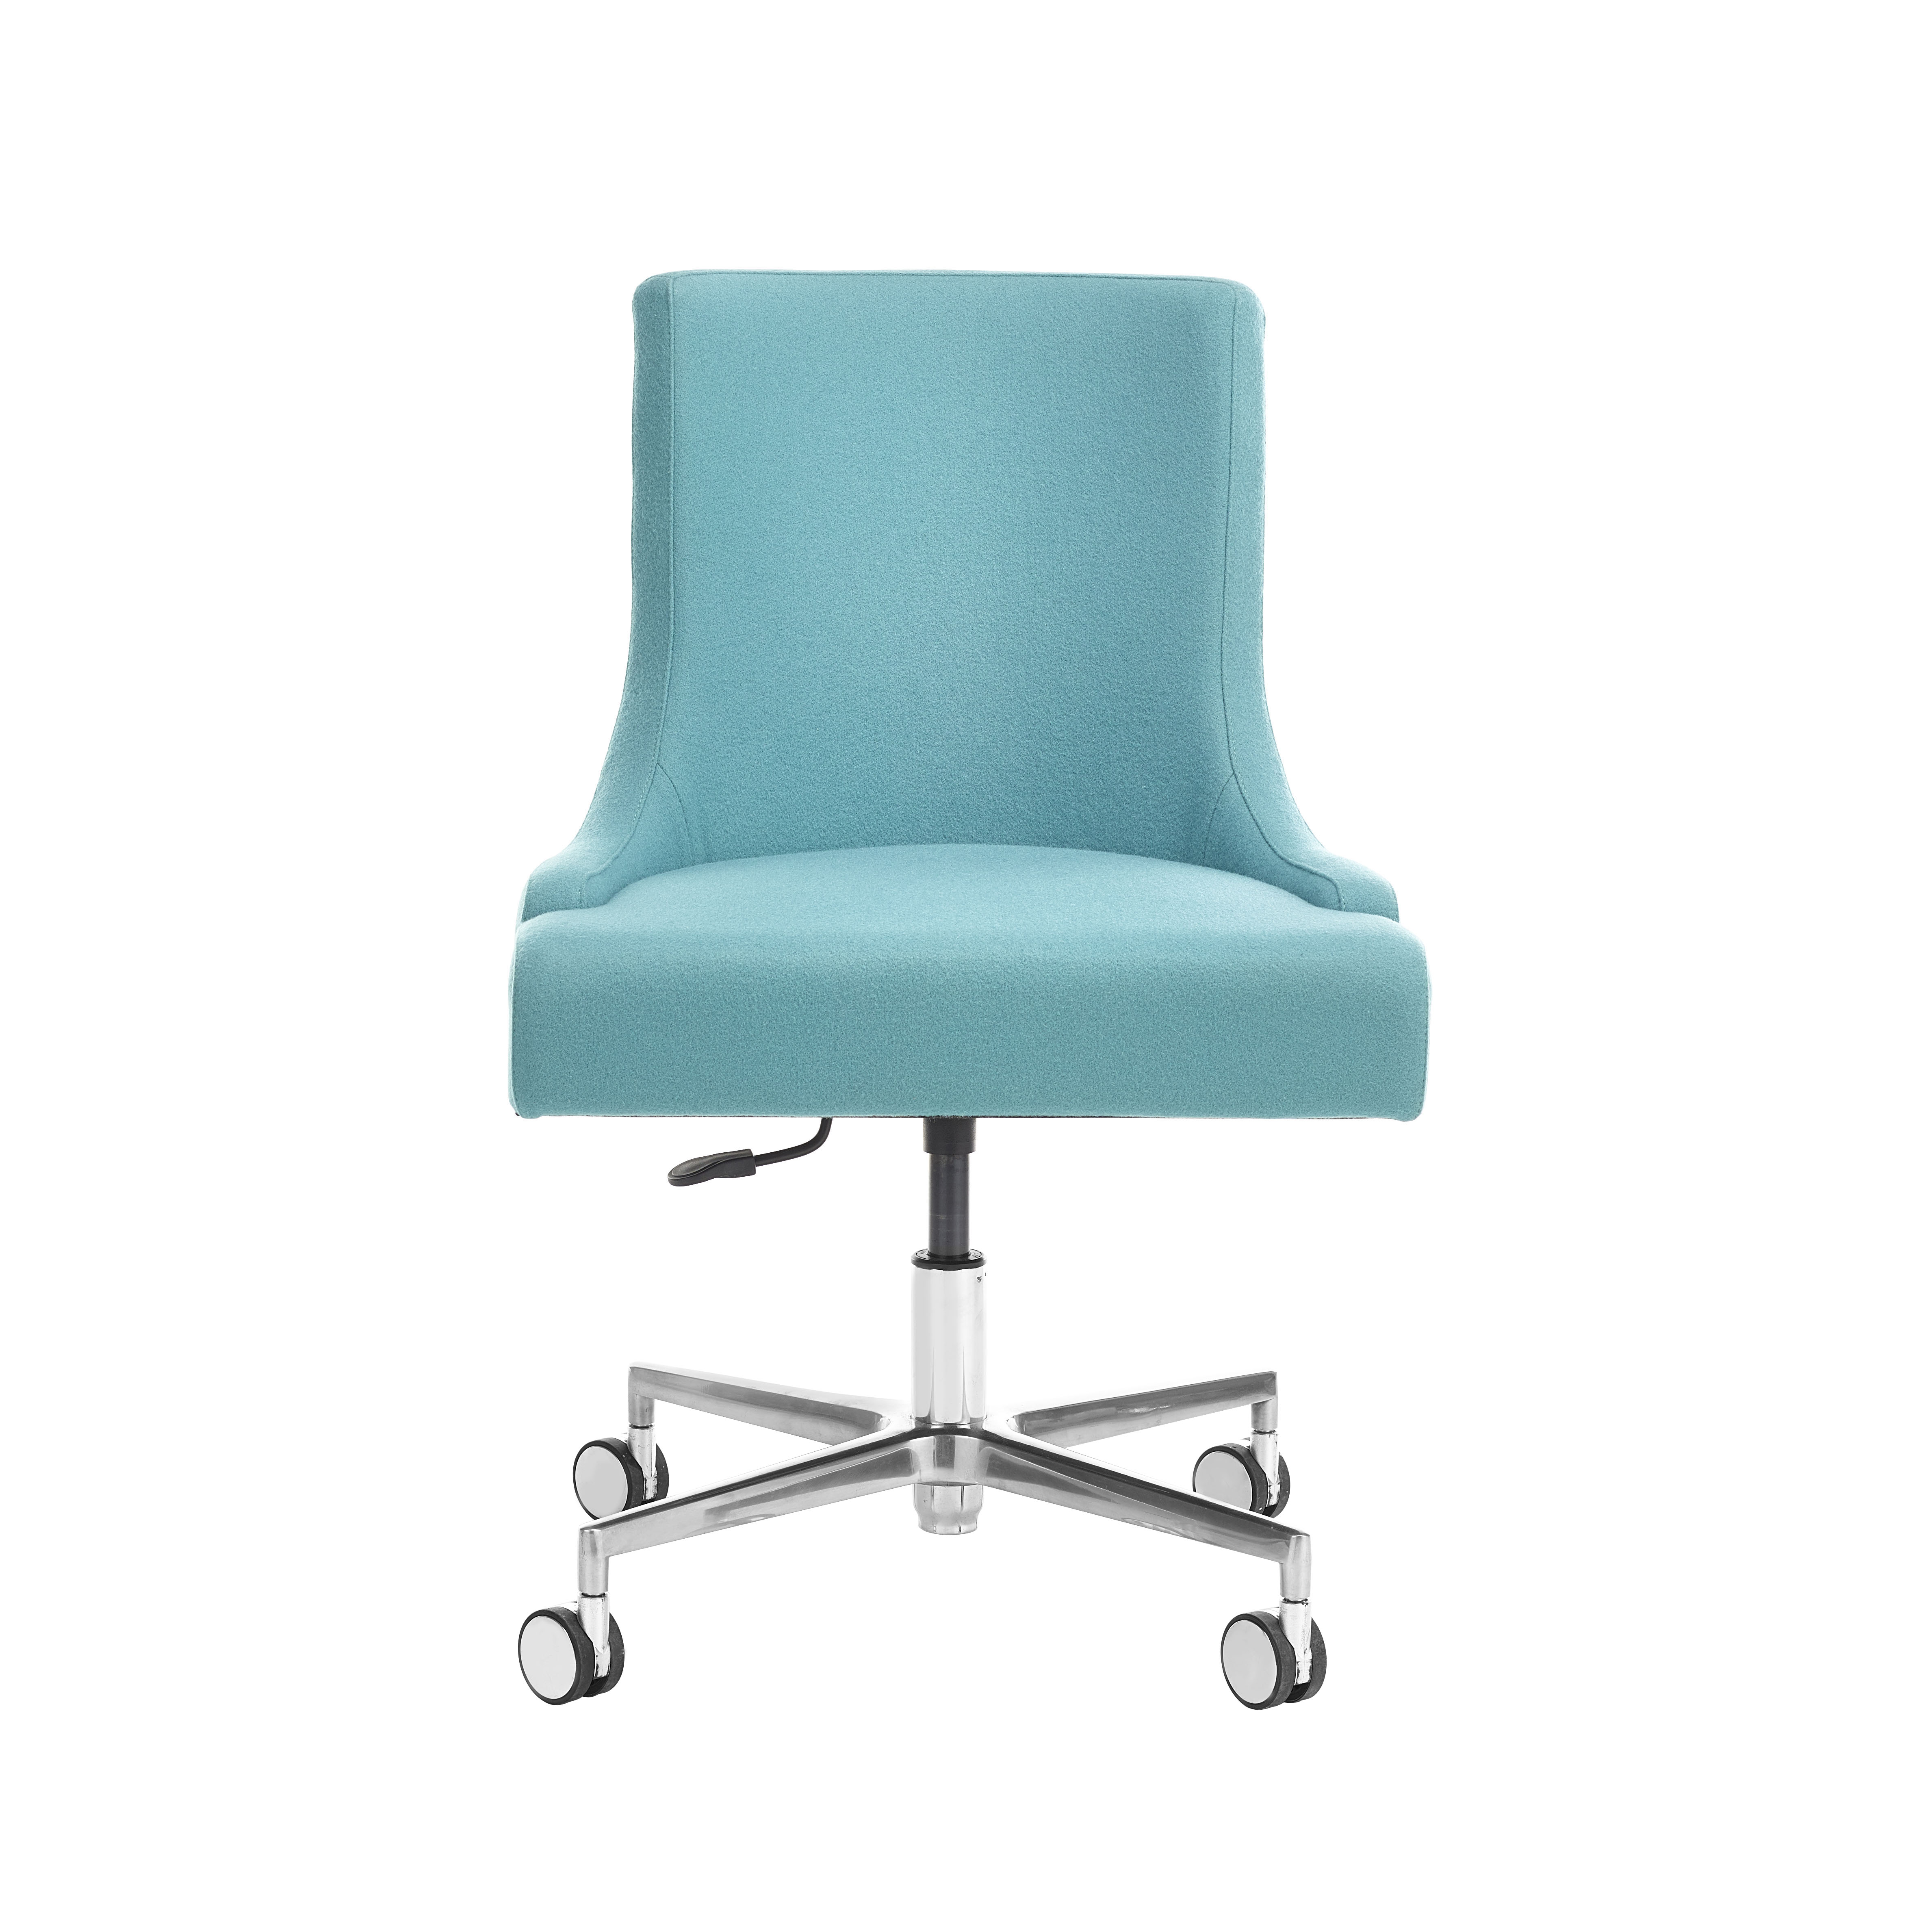 Sorrento Upright Armless Desk Chair With Castors And Variable Seat Height Knightsbridge Furniture